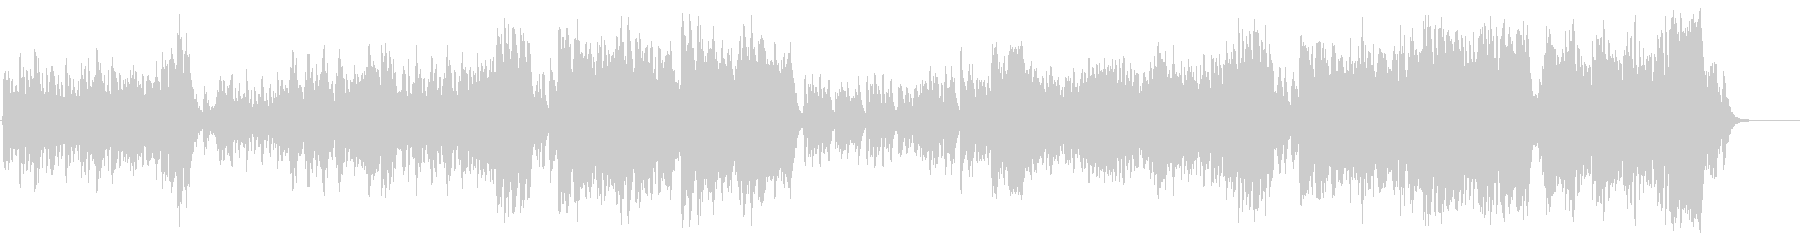 CANDY FACTORY's unreproduced waveform